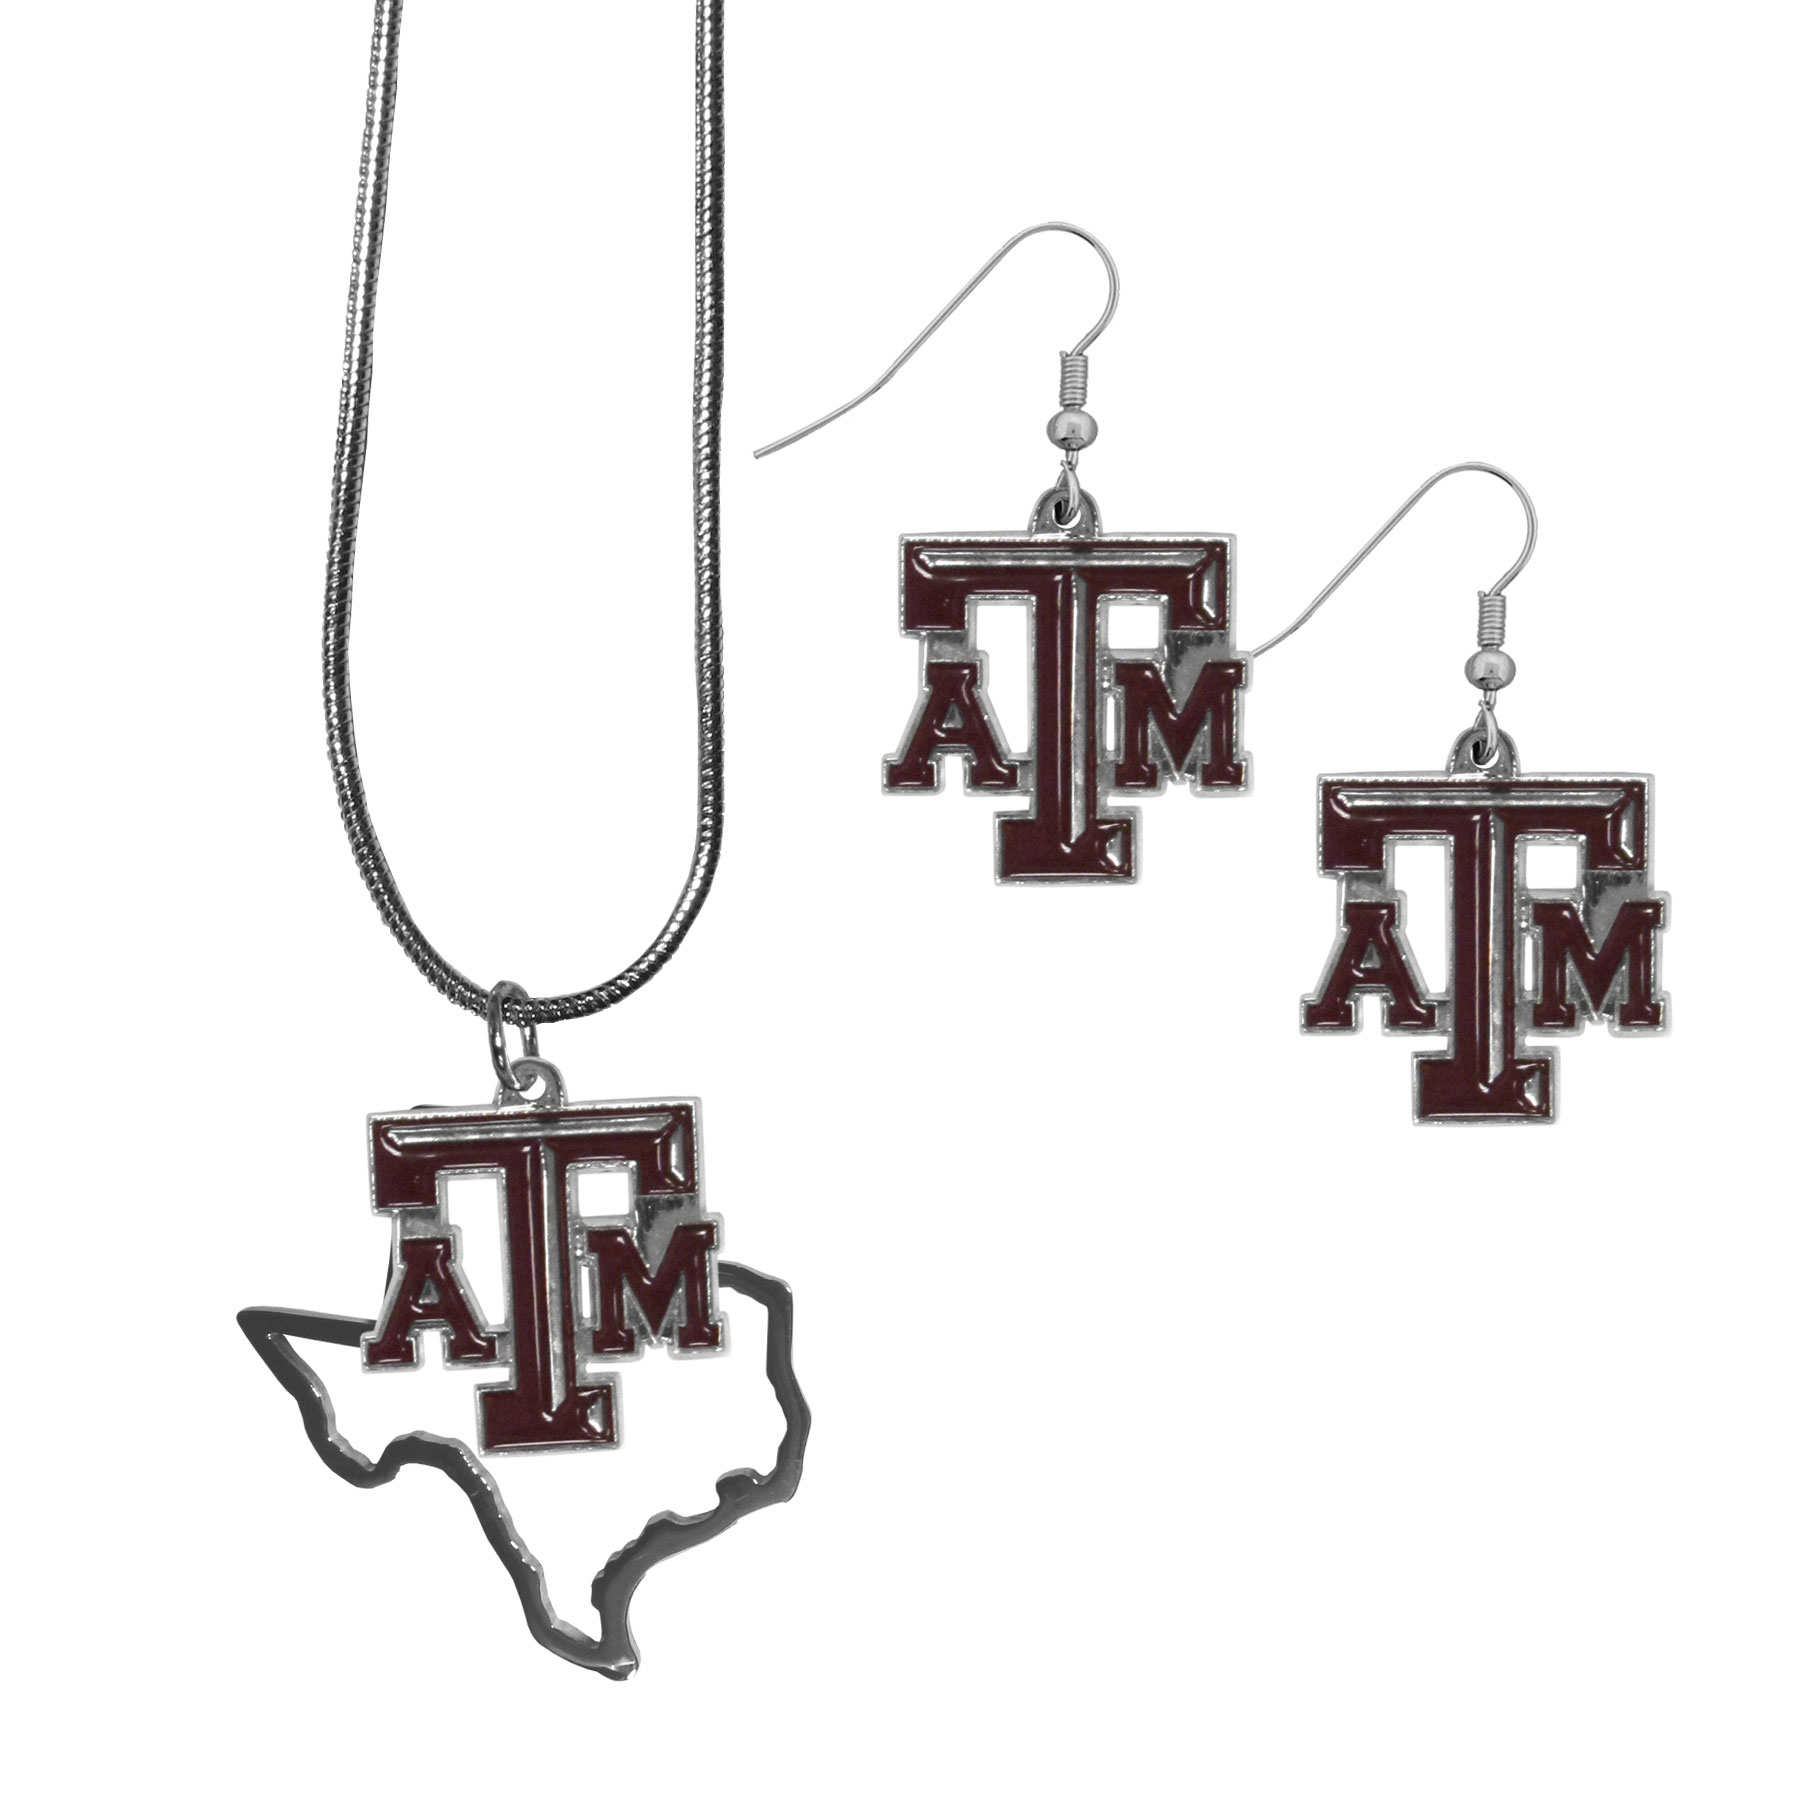 Texas A and M Aggies Dangle Earrings and State Necklace Set - Get in on the trend! State themes are a trend that just keeps getting more popular and this jewelry set takes the state style and give it a sporty twist with a Texas A & M Aggies necklace that features an Arizona state outline charm paired with a beautiful team charm and matching team charm dangle earrings. The earrings feature hypoallergenic fishhook posts that are nickel free.